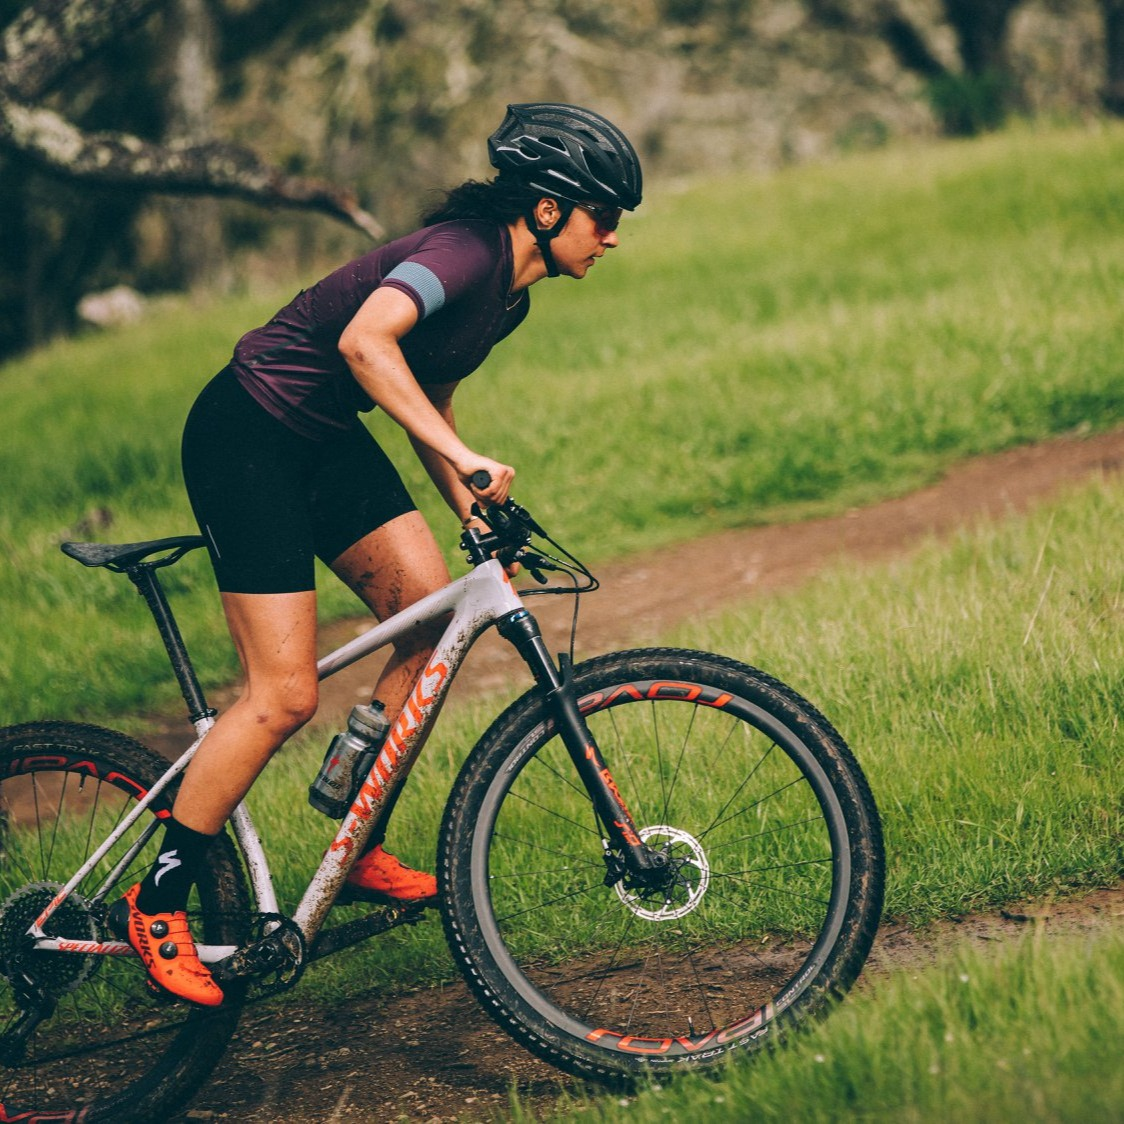 Woman riding an S-Works Epic Hardtail mountain bike